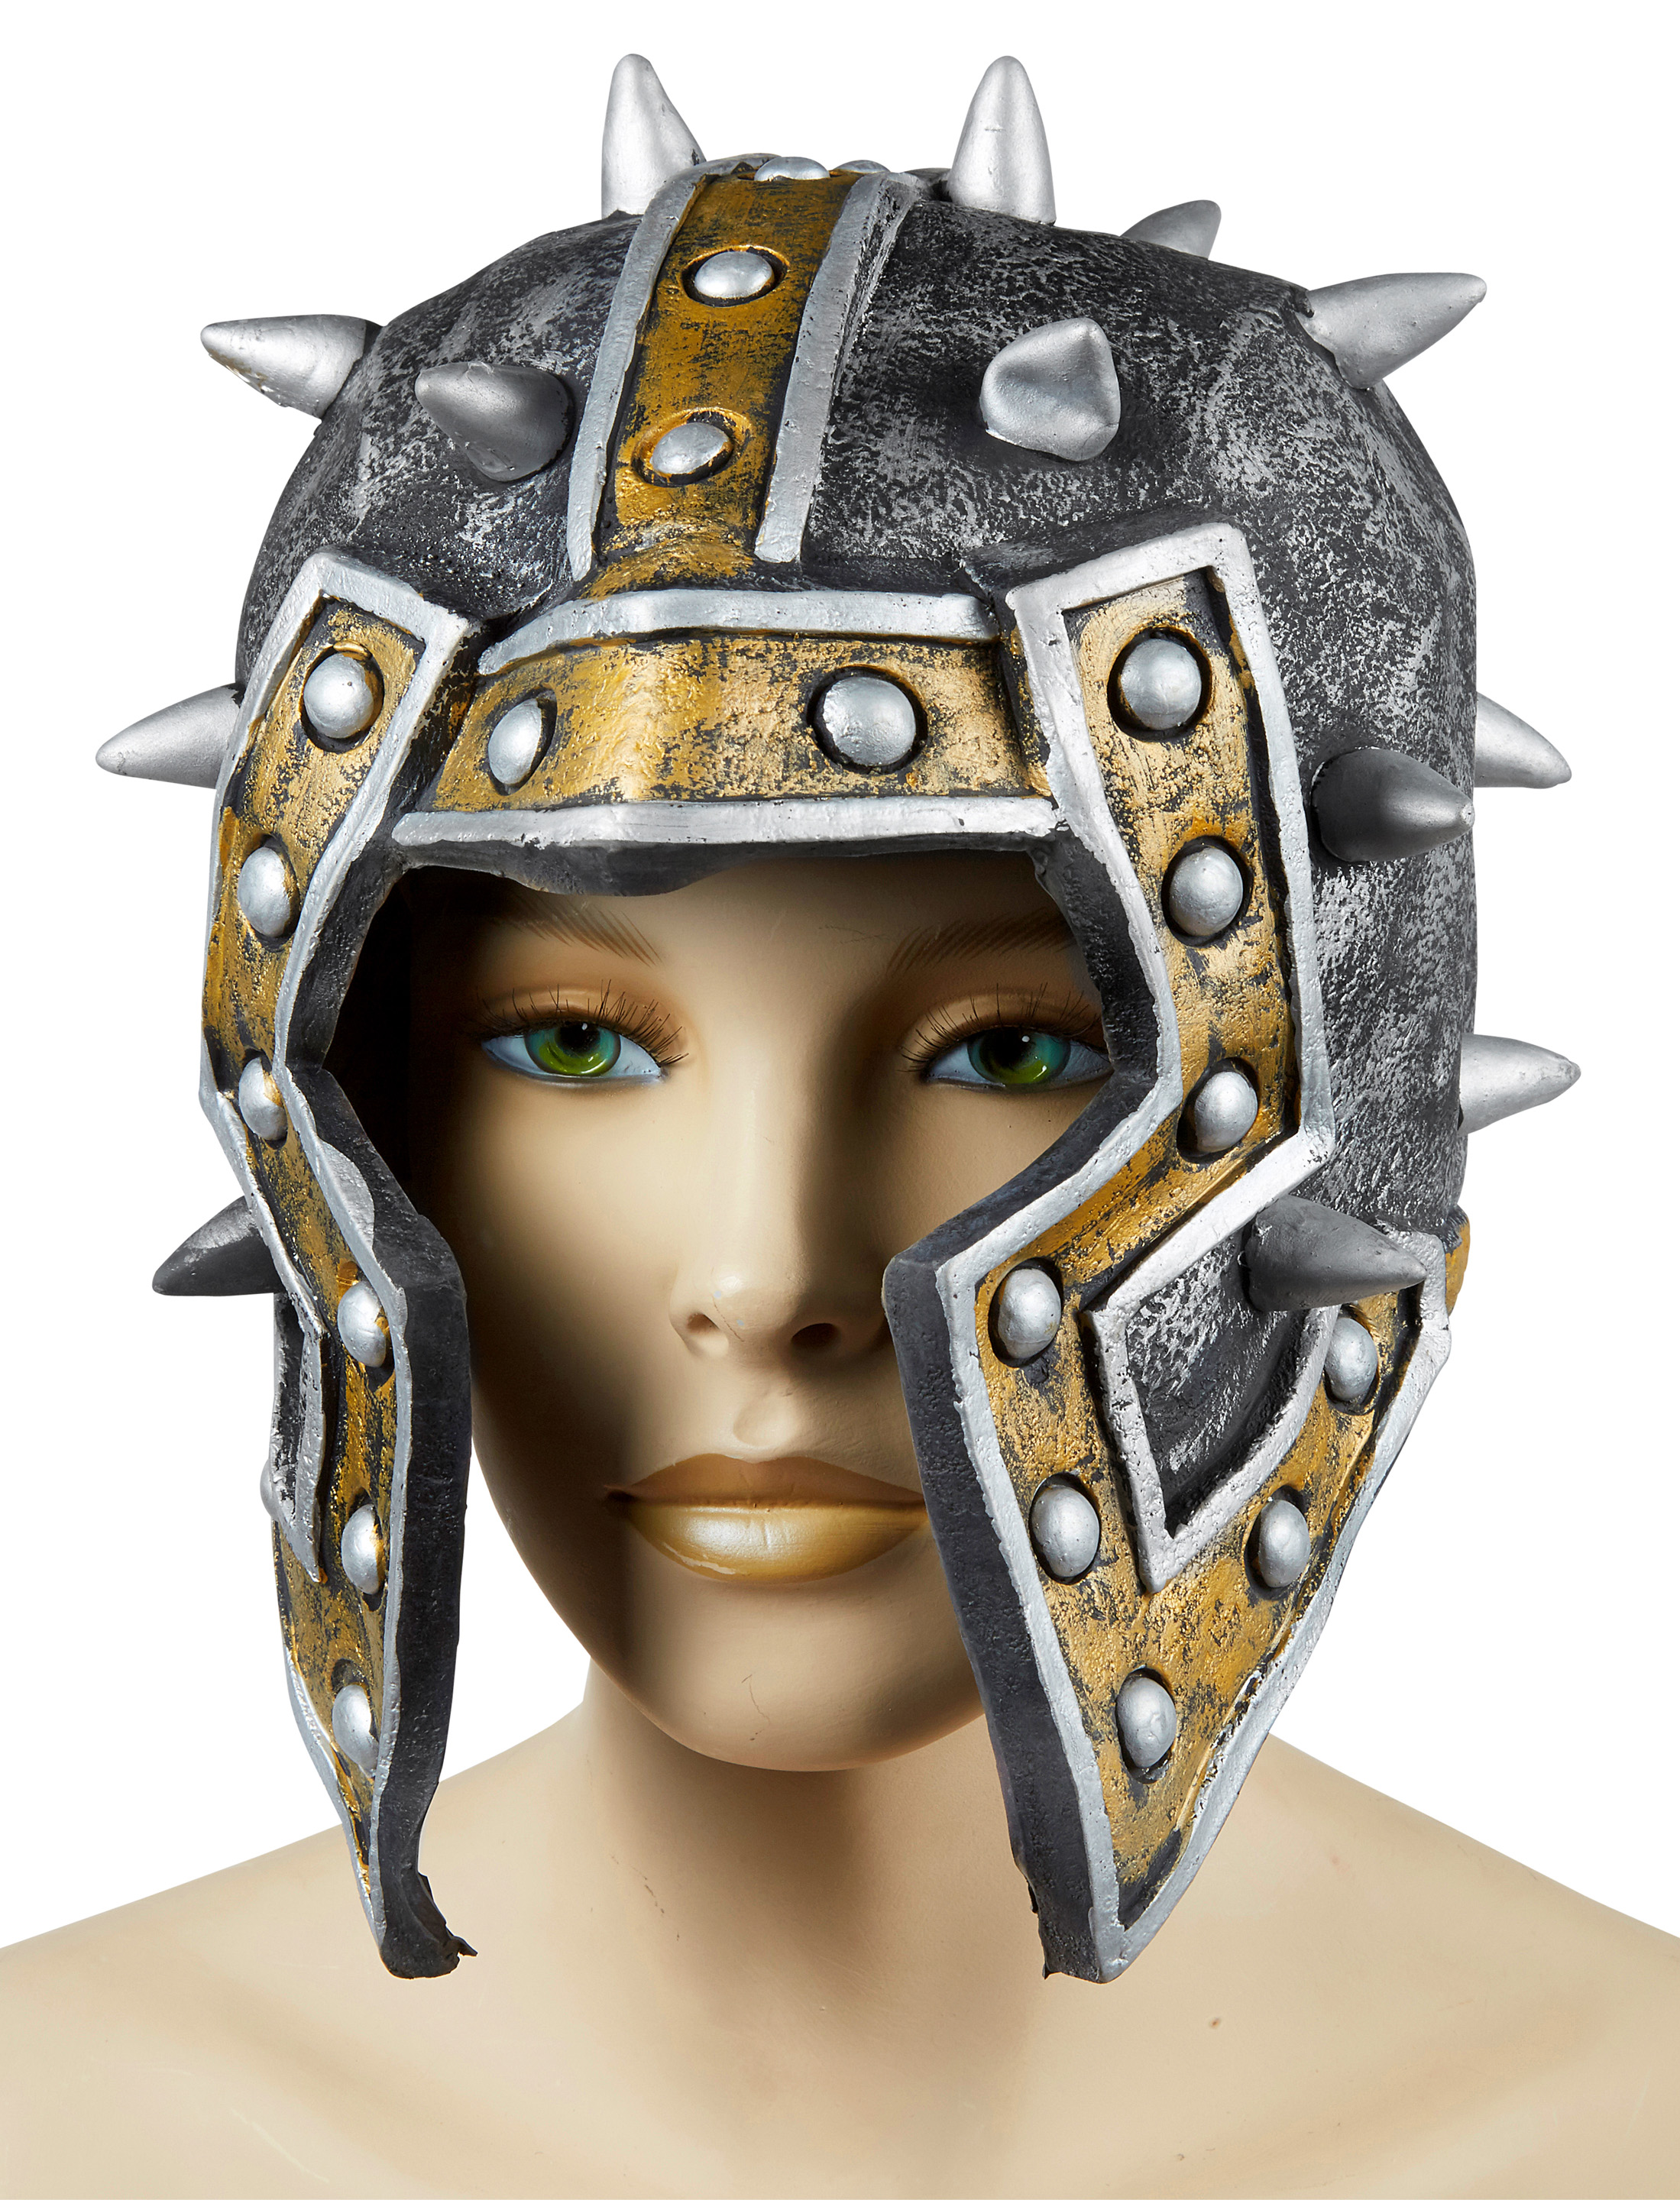 Kostuemzubehor Helm Latex Farbe: gold/silber